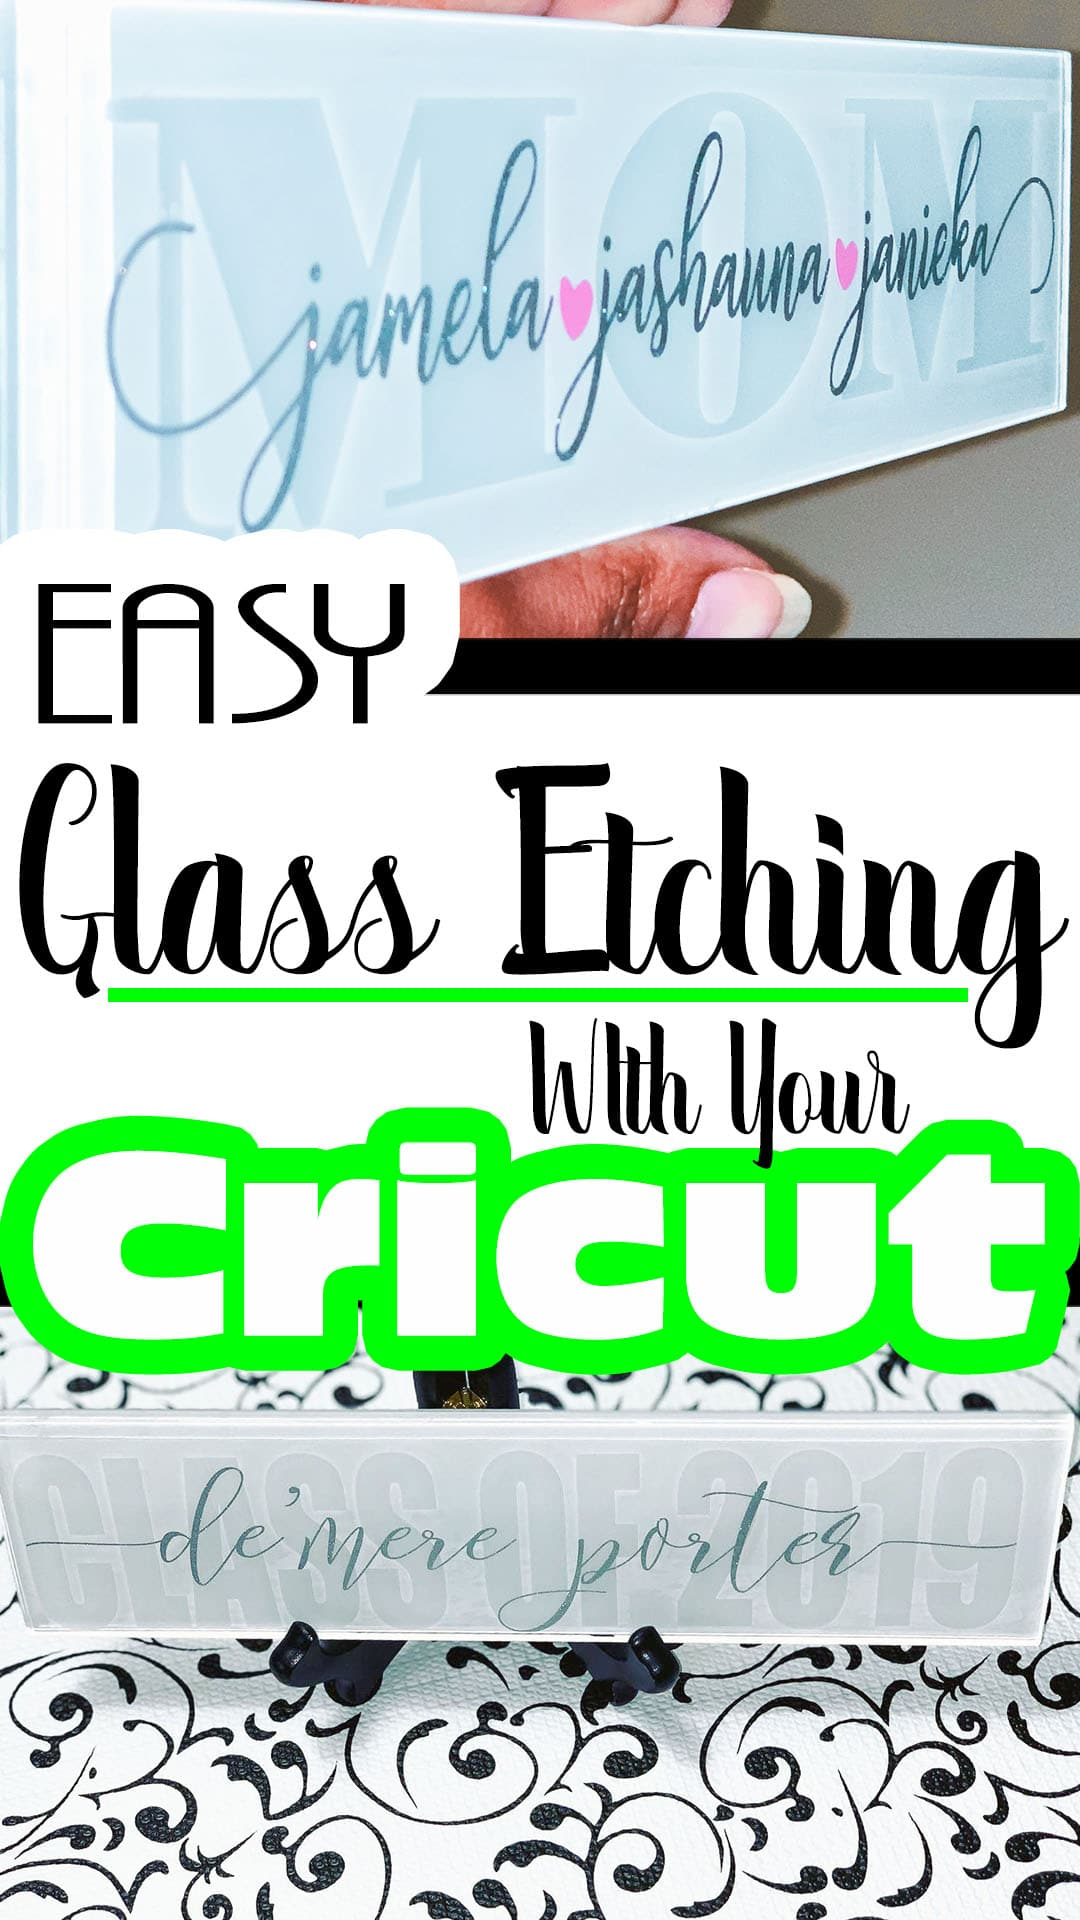 Learn how to etch glass for beautiful gifts and home decor projects. Find out how your Cricut to create stencils for glass etching. #cricutmade #cricutprojects #cricutexplore #cricut